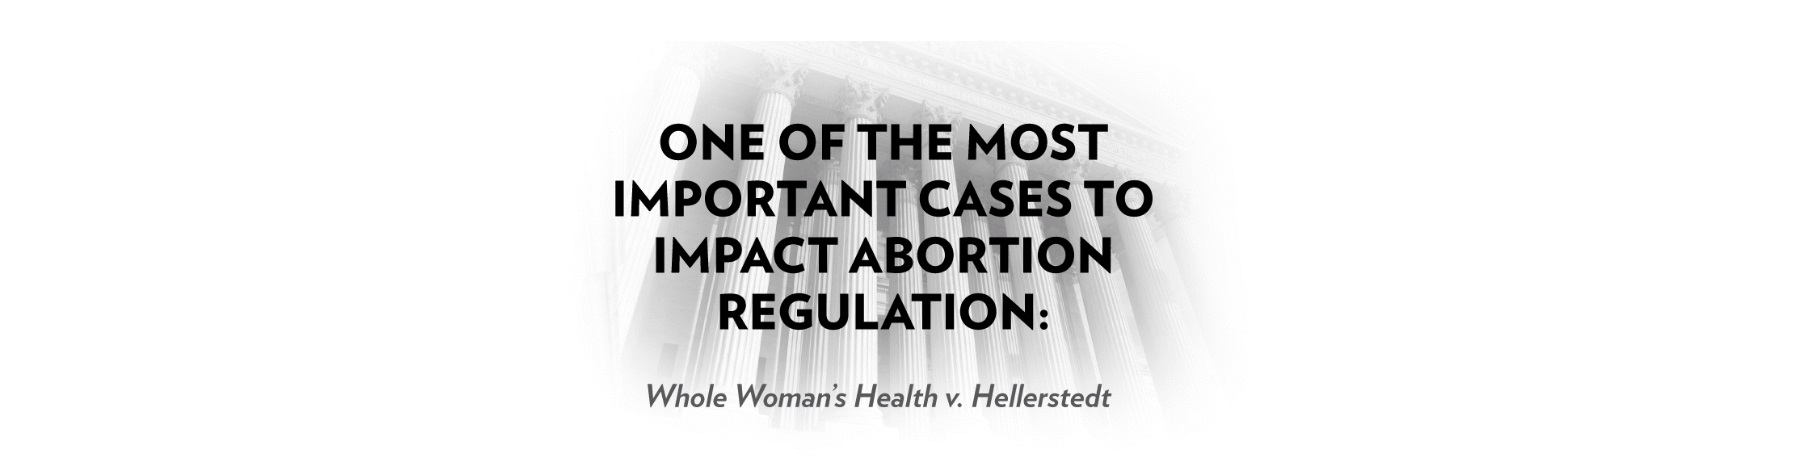 Whole Woman's Health v Hellerstedt